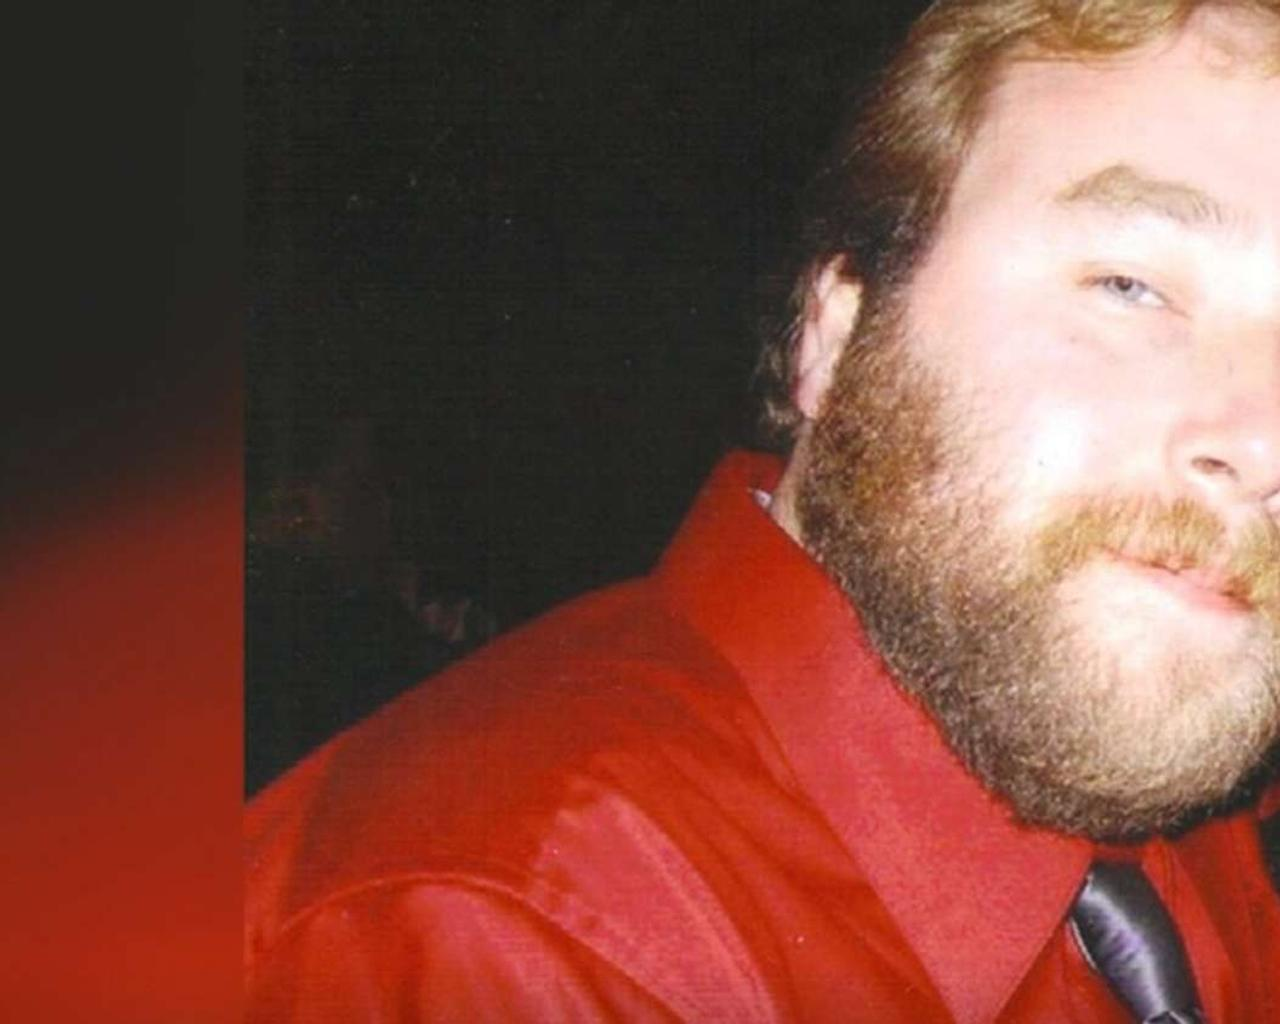 Heartbroken wife desperate for answers in suspicious disappearance of Robert Hourihan 10 years